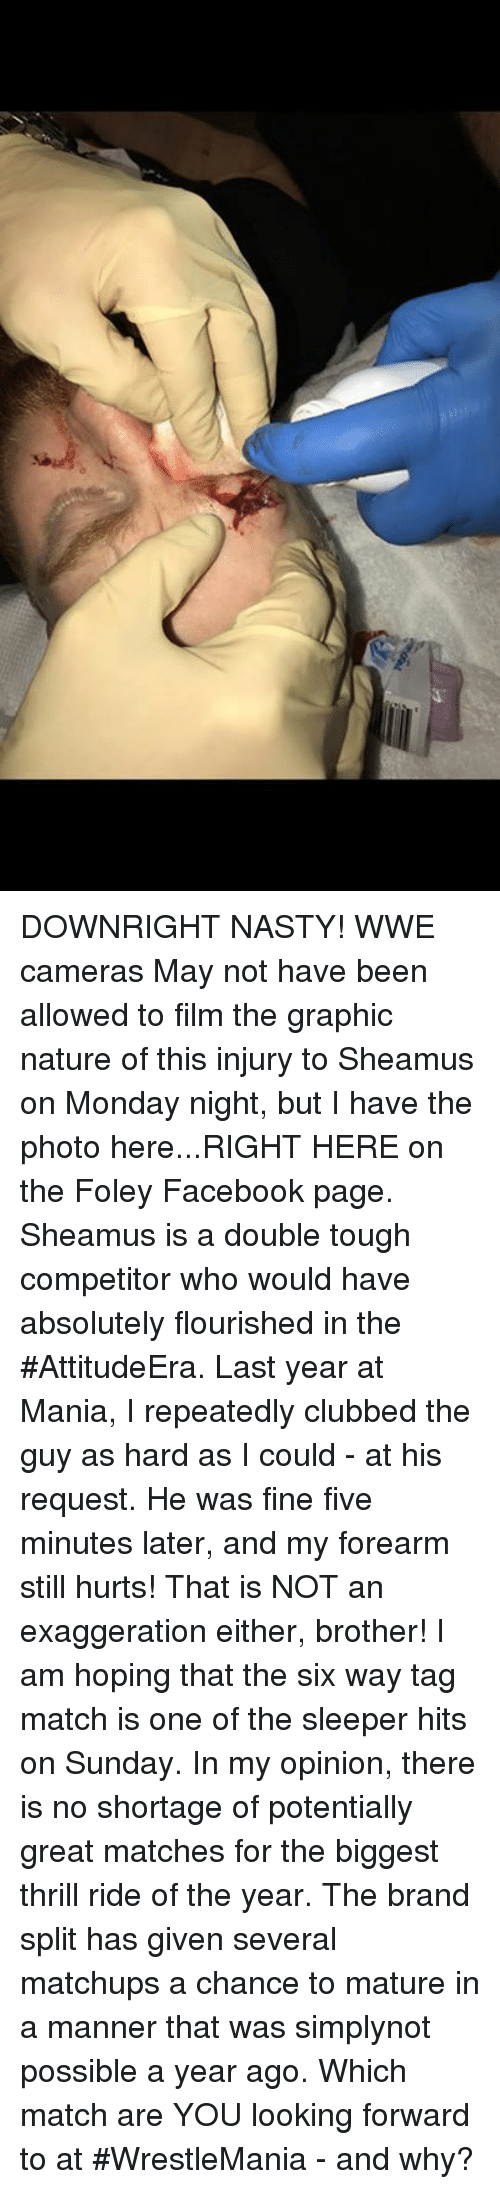 sheamus: DOWNRIGHT NASTY!  WWE cameras  May not have been allowed to film the graphic nature of this injury to Sheamus on Monday night,  but I have the photo here...RIGHT HERE on the Foley Facebook page. Sheamus is a double  tough competitor who would have absolutely flourished in the #AttitudeEra.  Last year at Mania, I repeatedly clubbed the guy as hard as I could - at his request. He was fine five minutes later, and my forearm still hurts! That is NOT an  exaggeration either, brother! I am hoping that the six way tag match is one of the sleeper hits on Sunday.  In my opinion, there is no shortage of potentially great matches for the biggest thrill ride of the year. The brand split has given several matchups a chance to mature in a manner that was simplynot possible a year ago.   Which match are YOU looking forward to at #WrestleMania - and why?